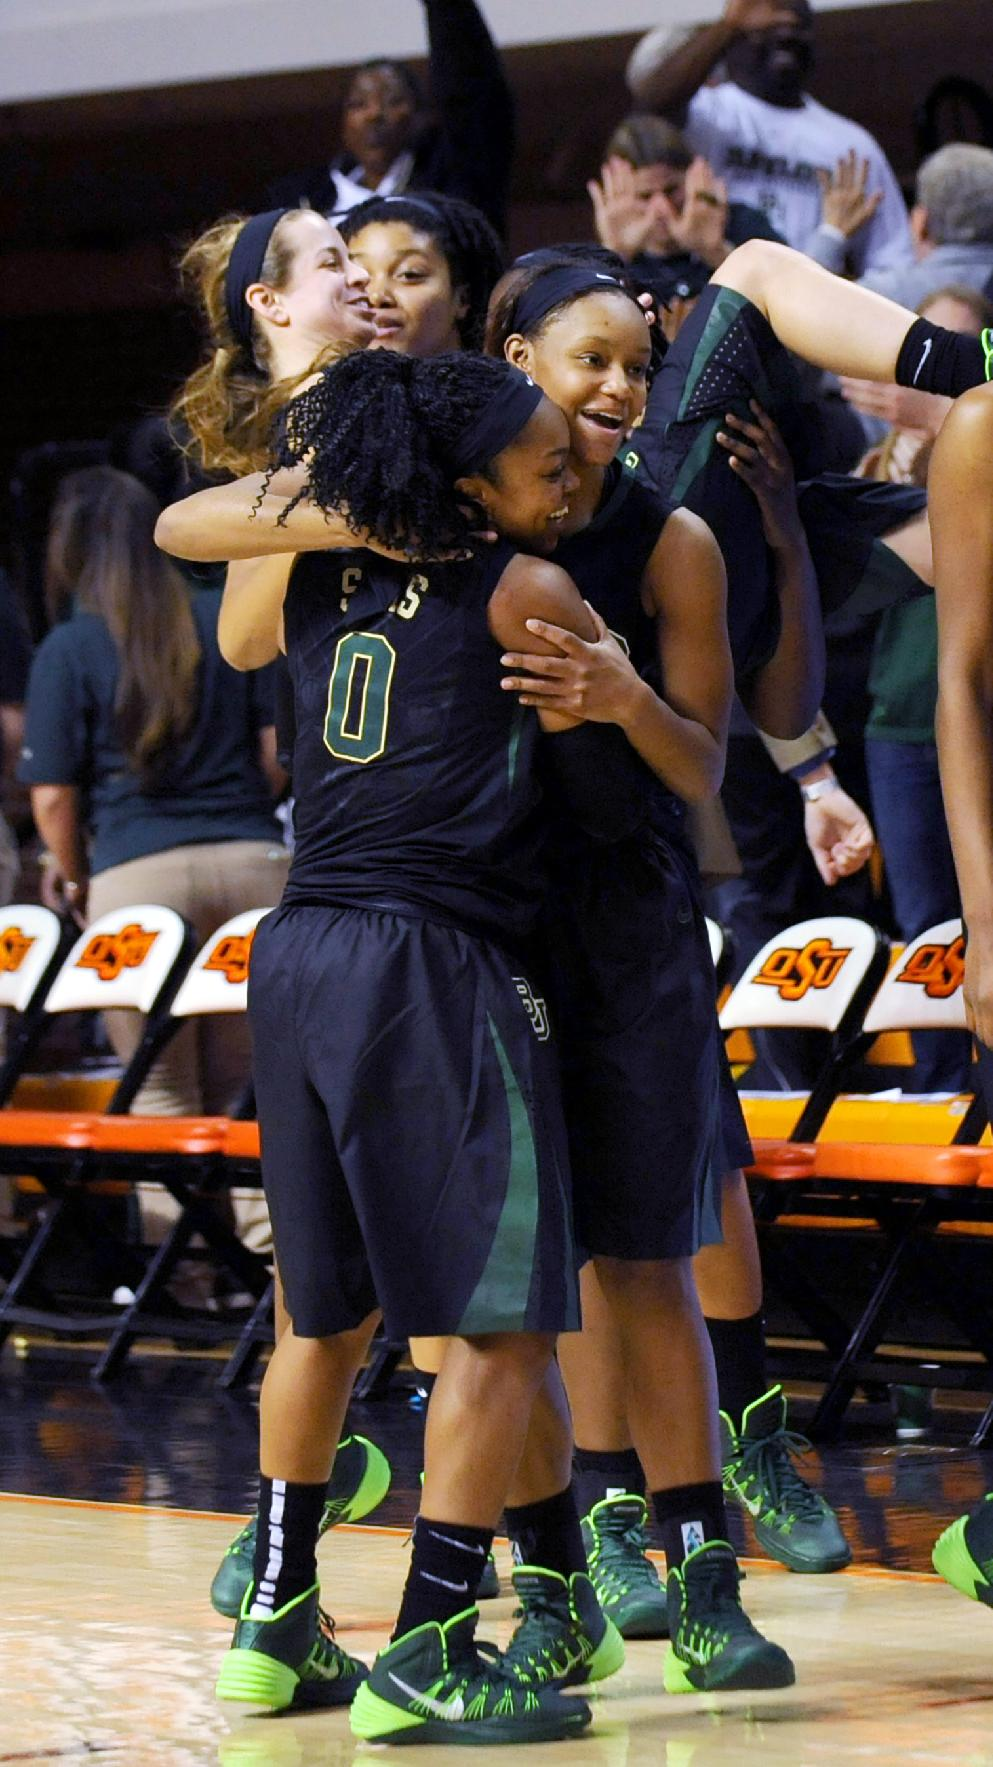 Baylor guard Odyssey Sims, left, and forward Nina Davis hug in celebration following an NCAA college basketball game in Stillwater, Okla., Sunday, Jan. 26, 2014. Sims had 17 points in the 69-66 win over Oklahoma State